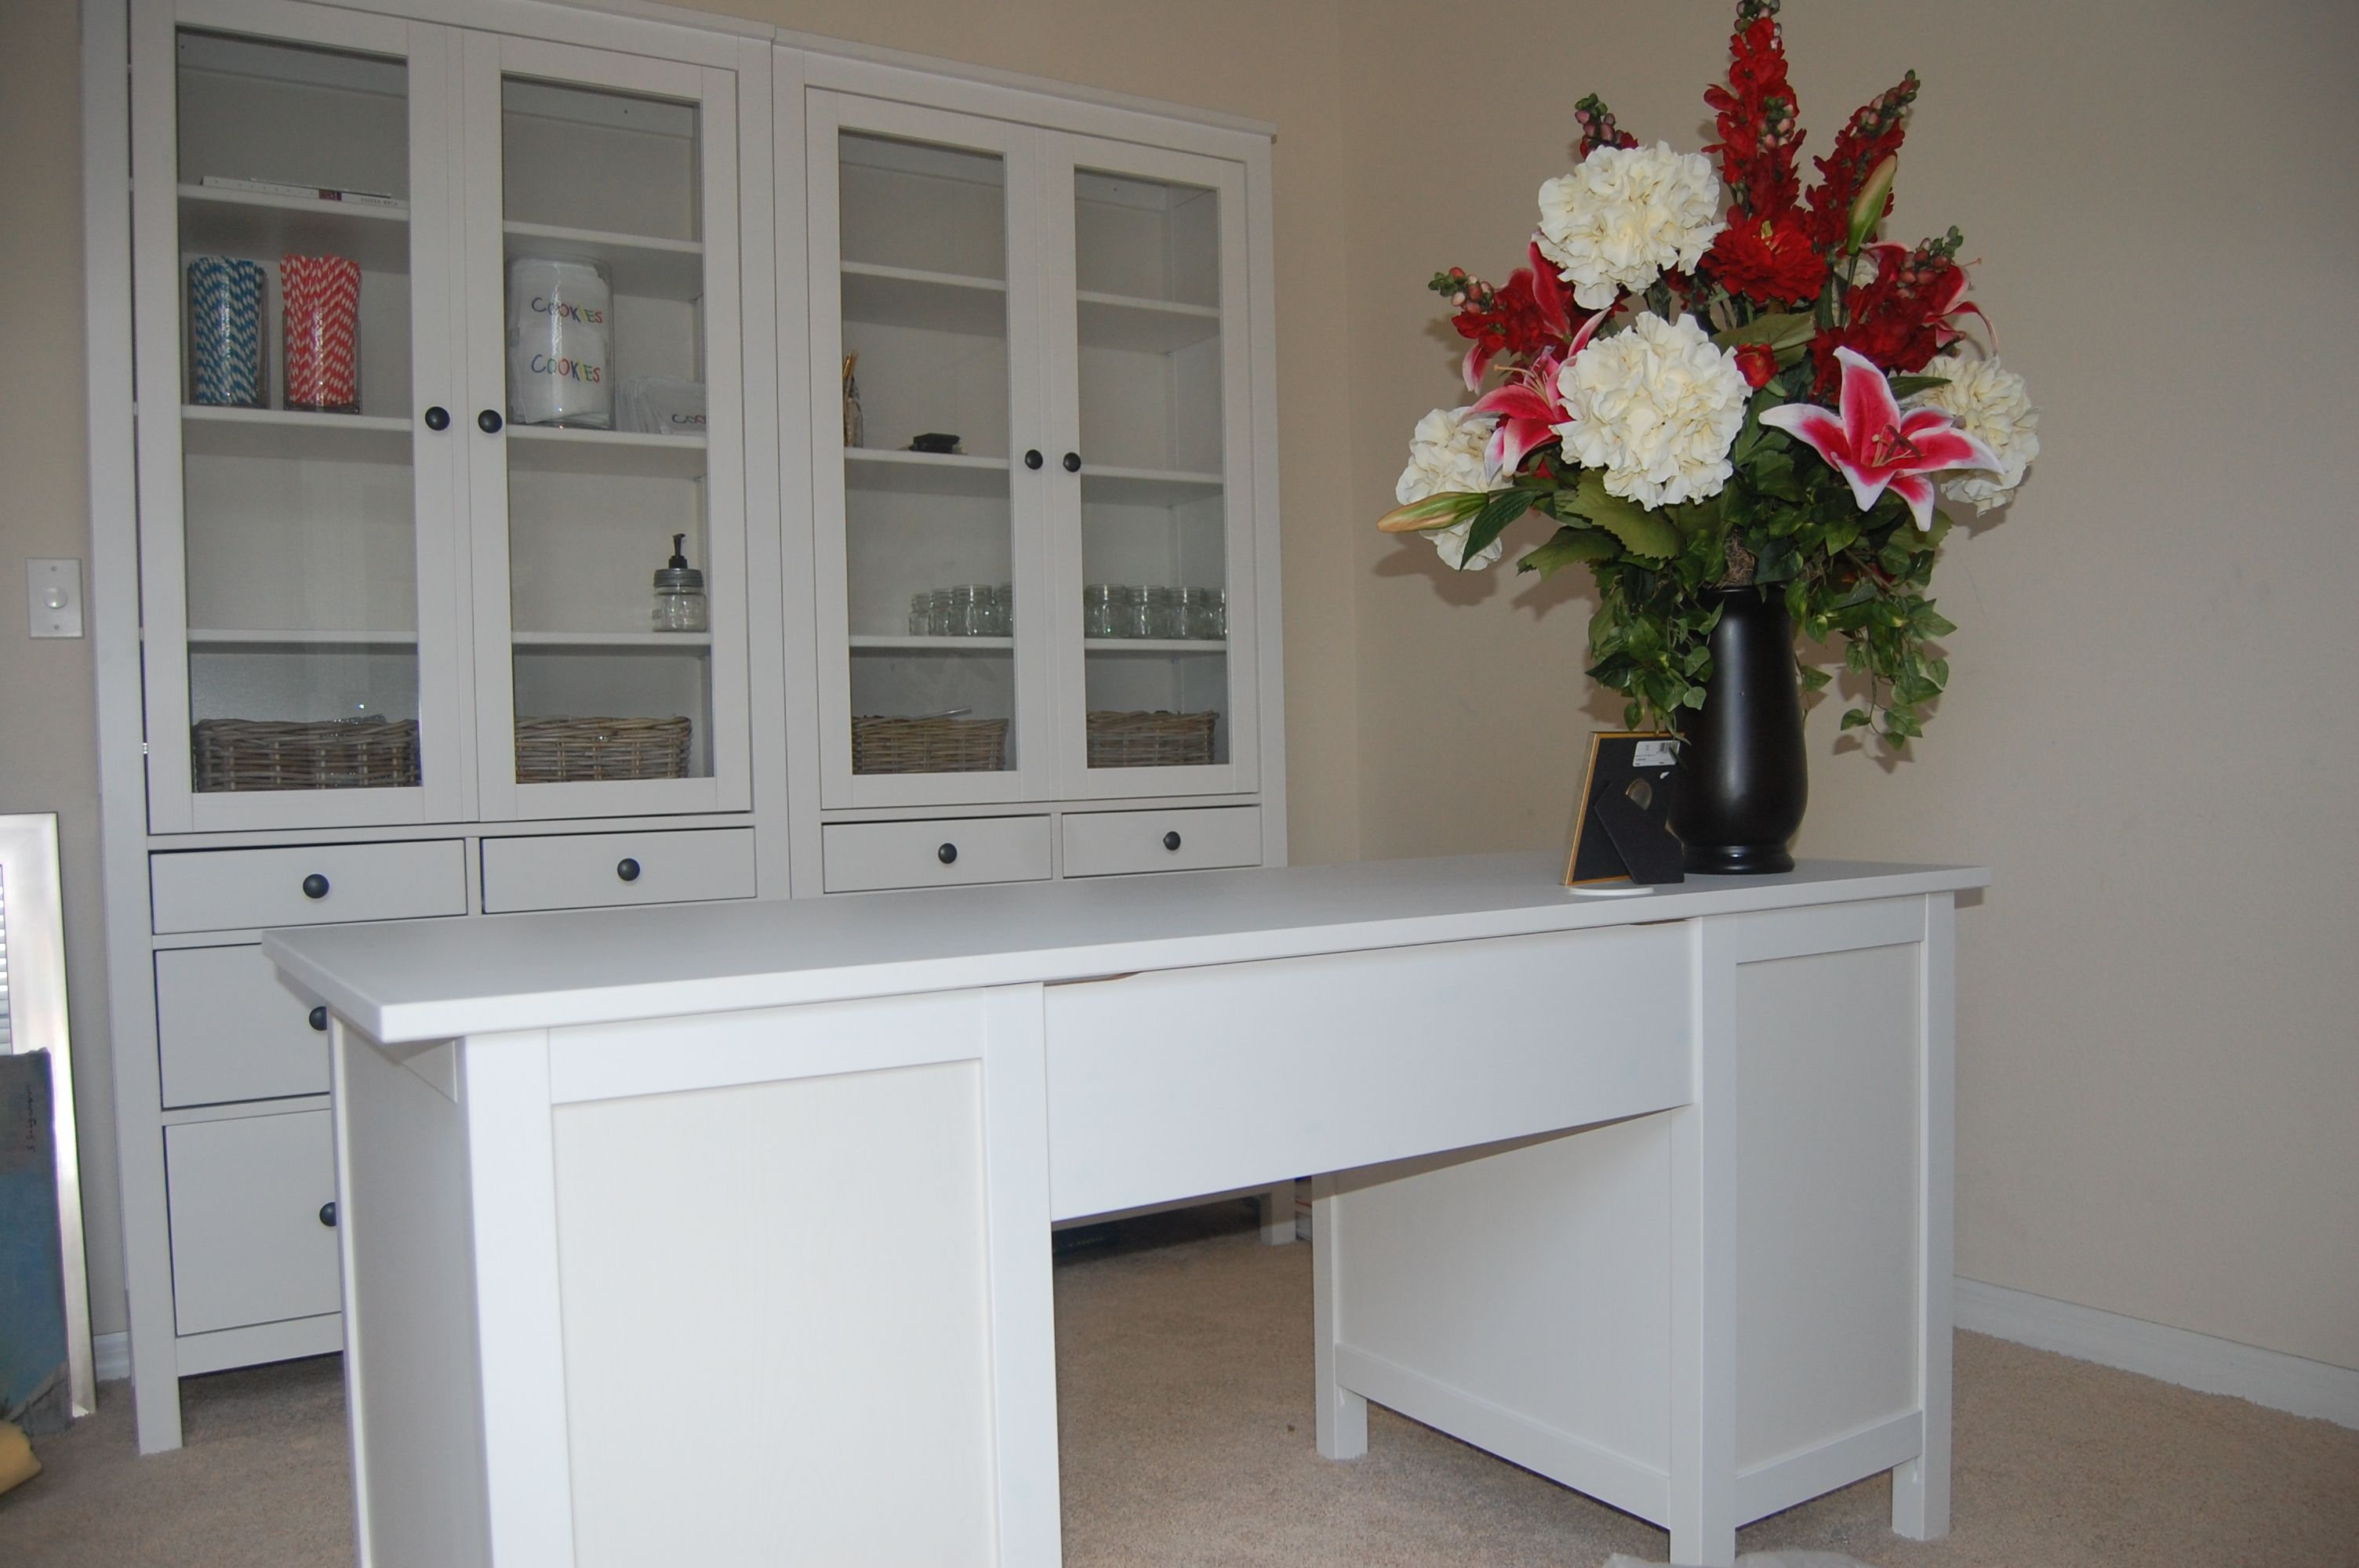 Office Playroom Ideas Pottery Barn Inspiration Ikea Hemnes Desk And Book  Shelves In Our With Ikea Ideen Hemnes